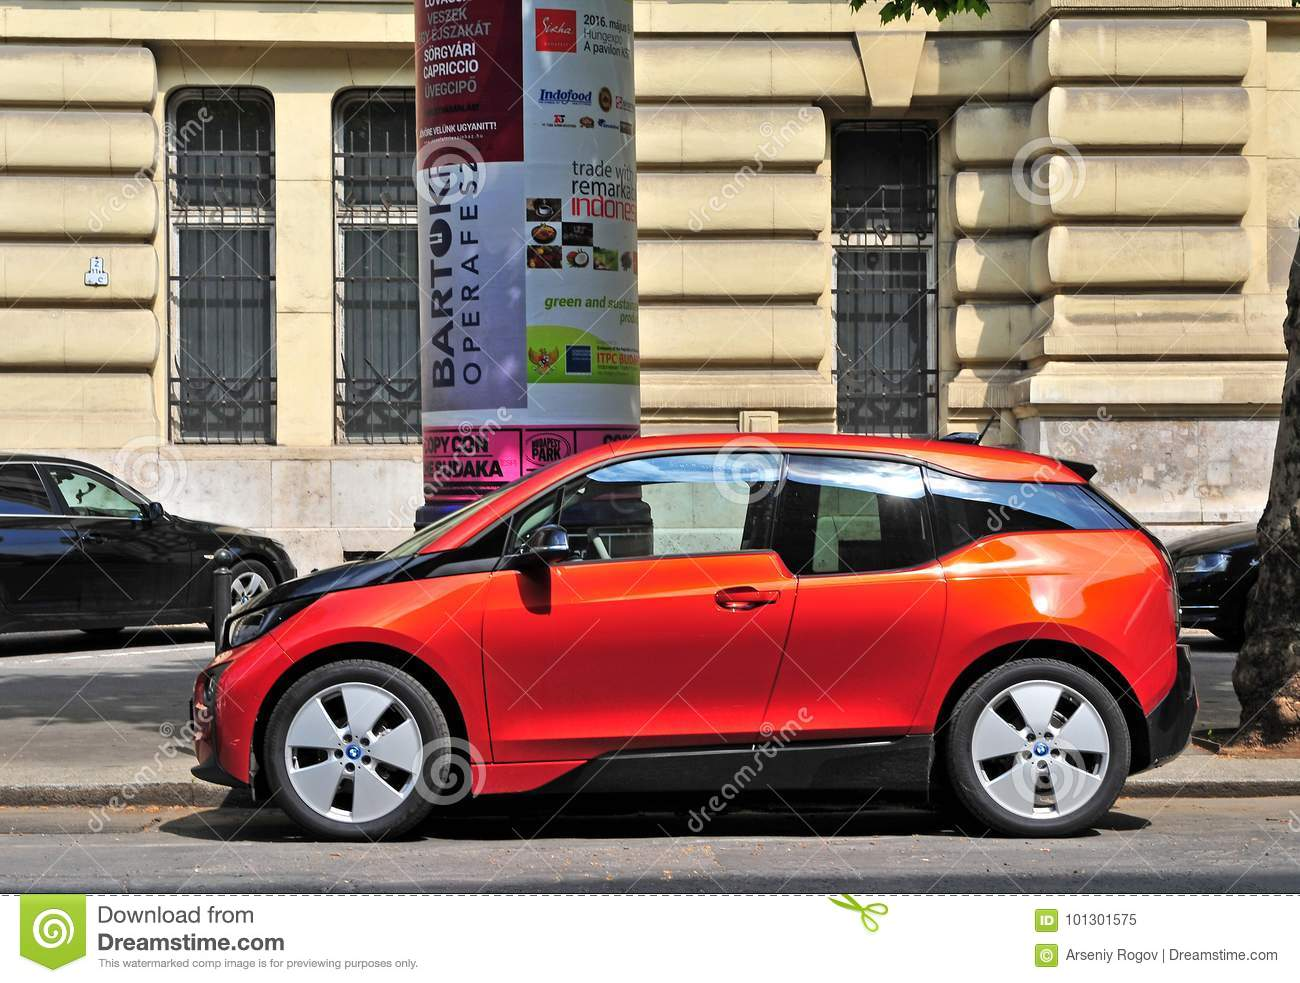 Bmw I3 Electric Car In The Street Editorial Image Image Of Future